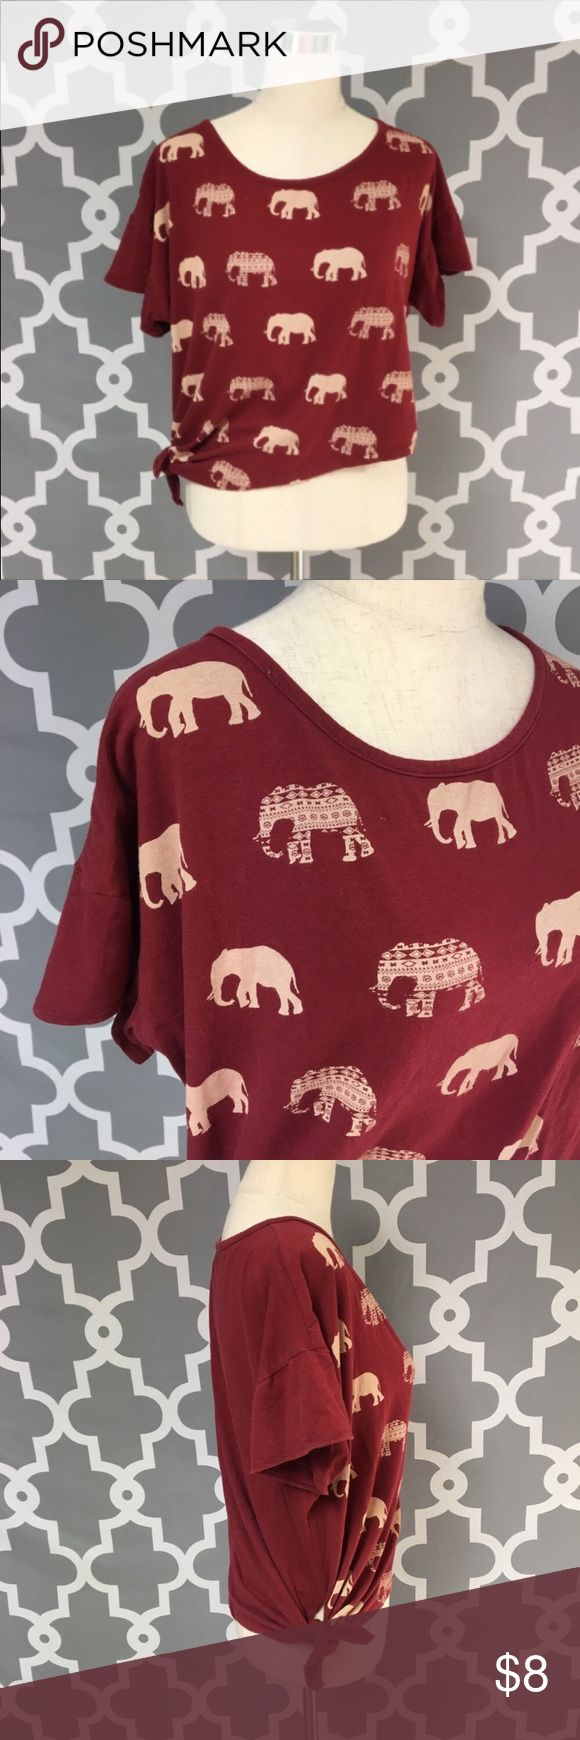 Asymmetrical Oversized Elephant Tie Front Top 🔘Description Tea n Rose Asymmetrical Oversized Elephant Crop Top juniors size large good used condition color is cream and burgundy  🔘Measurements: Pit to Pit: 24 inches      Shoulder to Hem: 19 inches                             Inventory: A  Thanks for stopping by! Tops